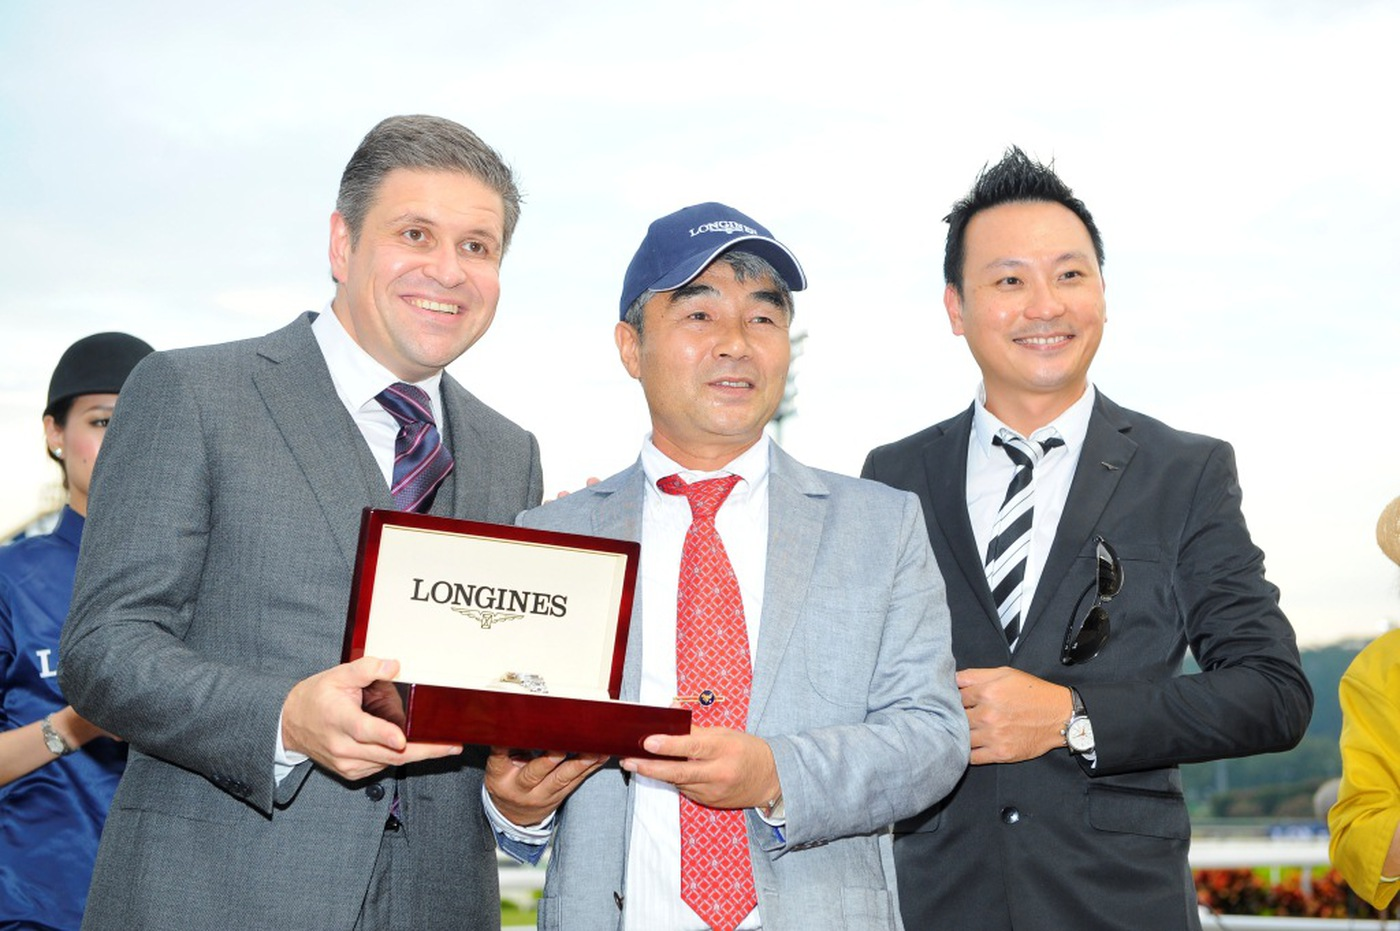 Longines Flat Racing Event: Longines Singapore Gold Cup 2012 raises S$236,728 15